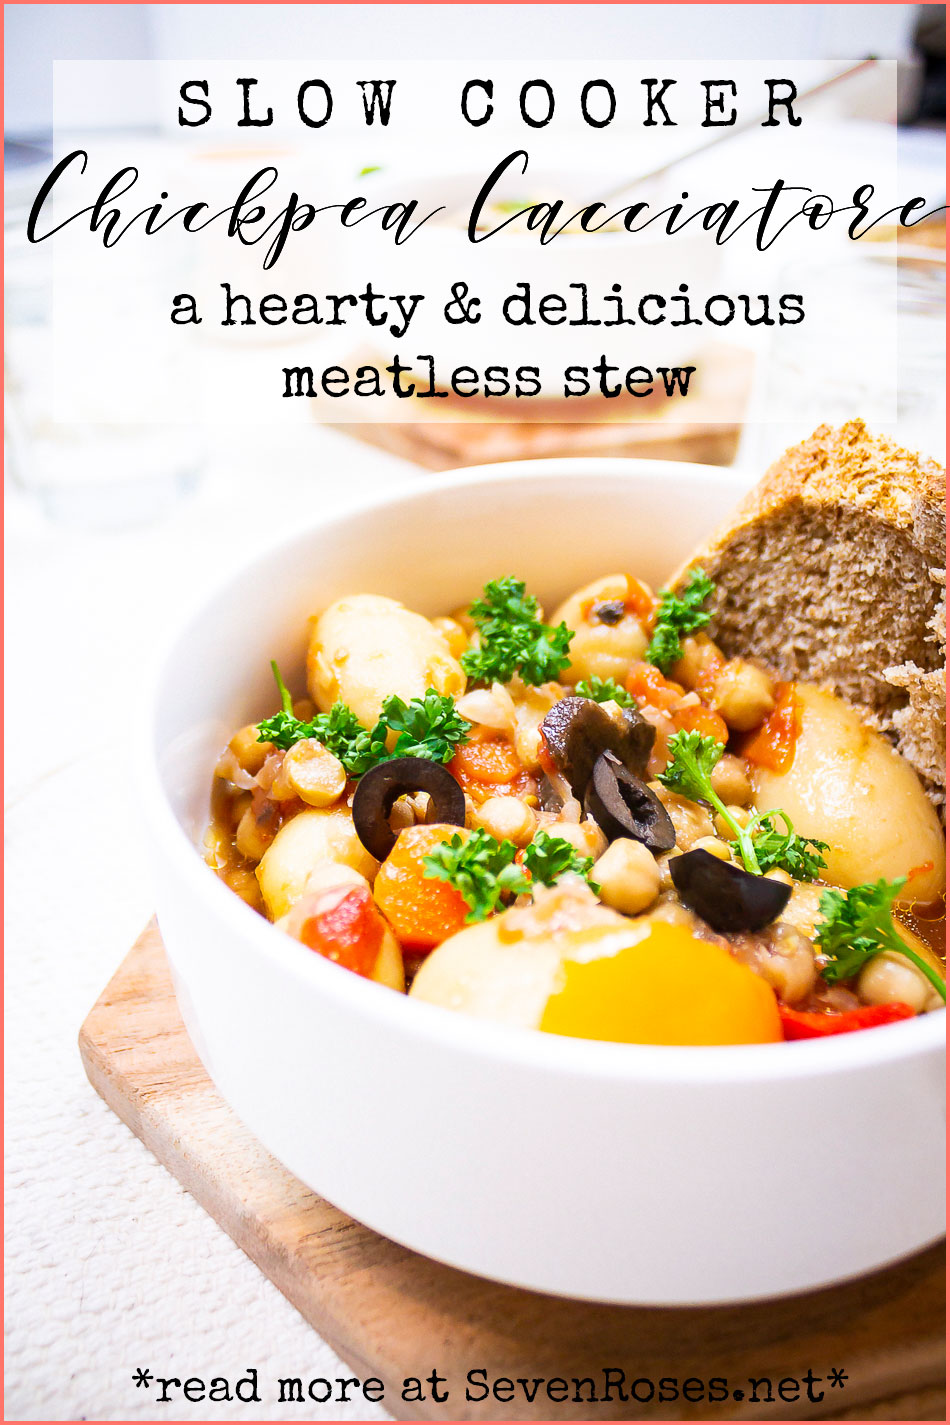 Slow cooker Chickpea Cacciatore: a hearty and delicious meatless stew